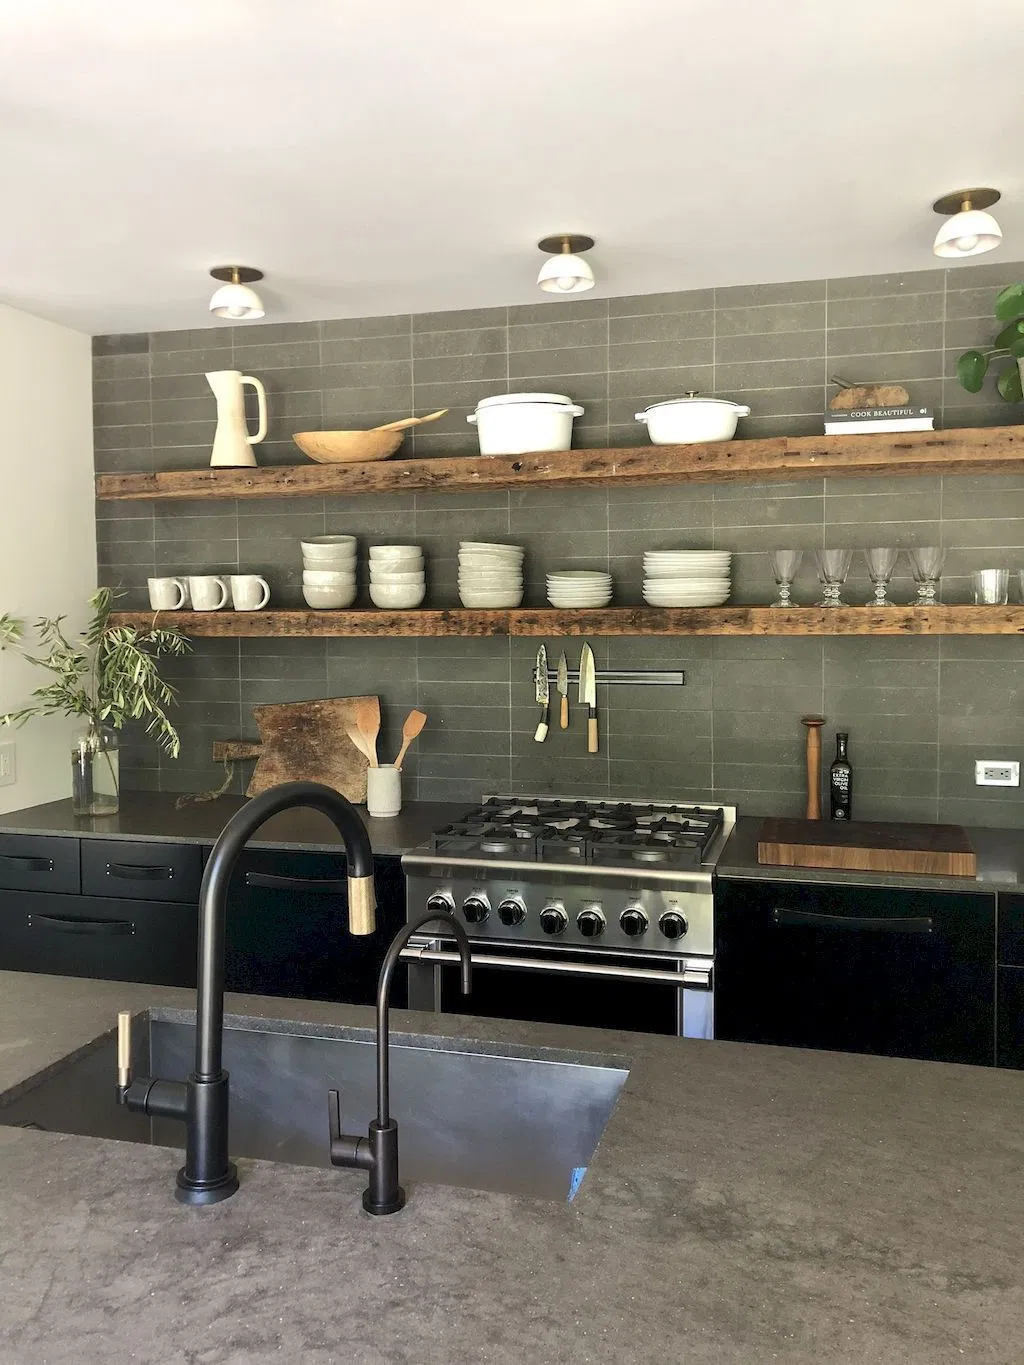 darker neutrals in a minimalilst kitchen with cement countertops, matte black sink faucet and black cabinets